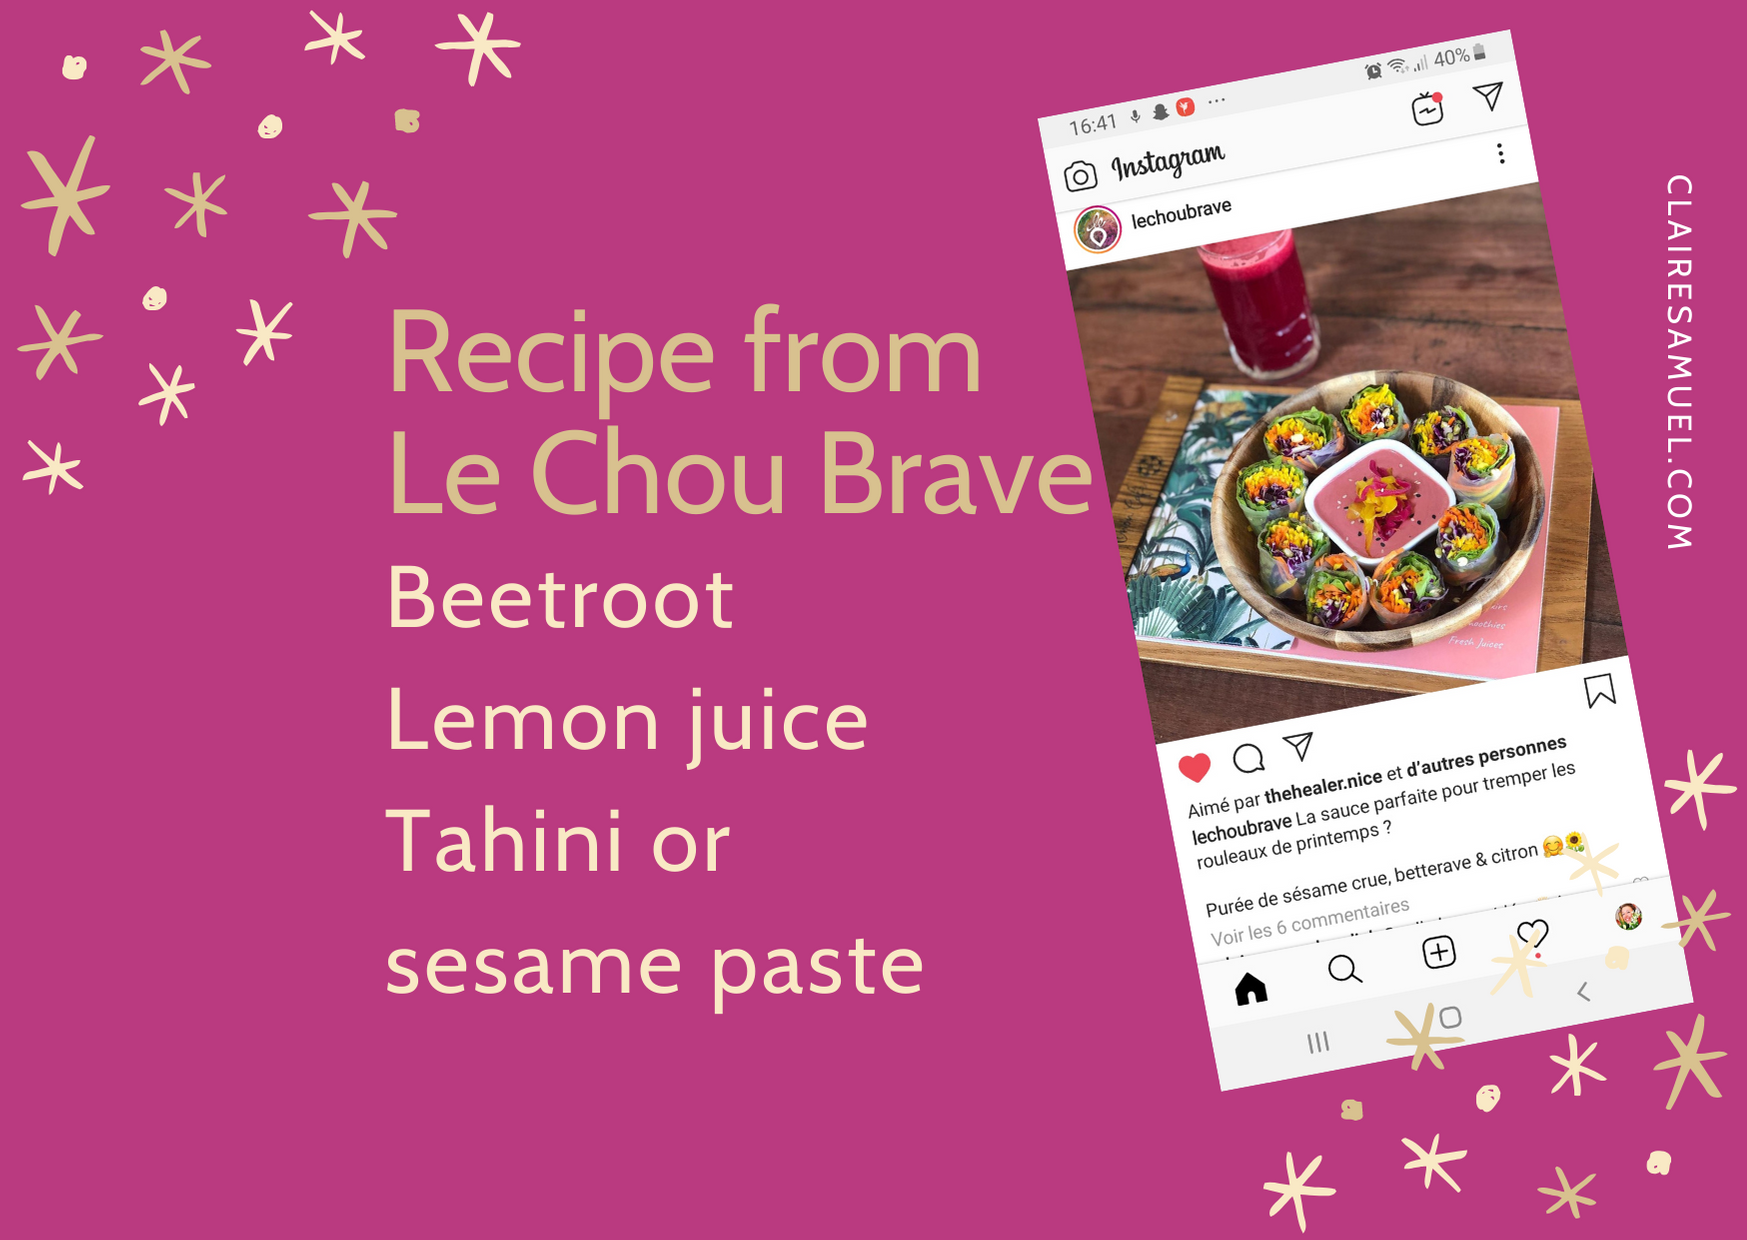 I test a #recipe with #beetroot #tahini and lemon by Le Chou Brave